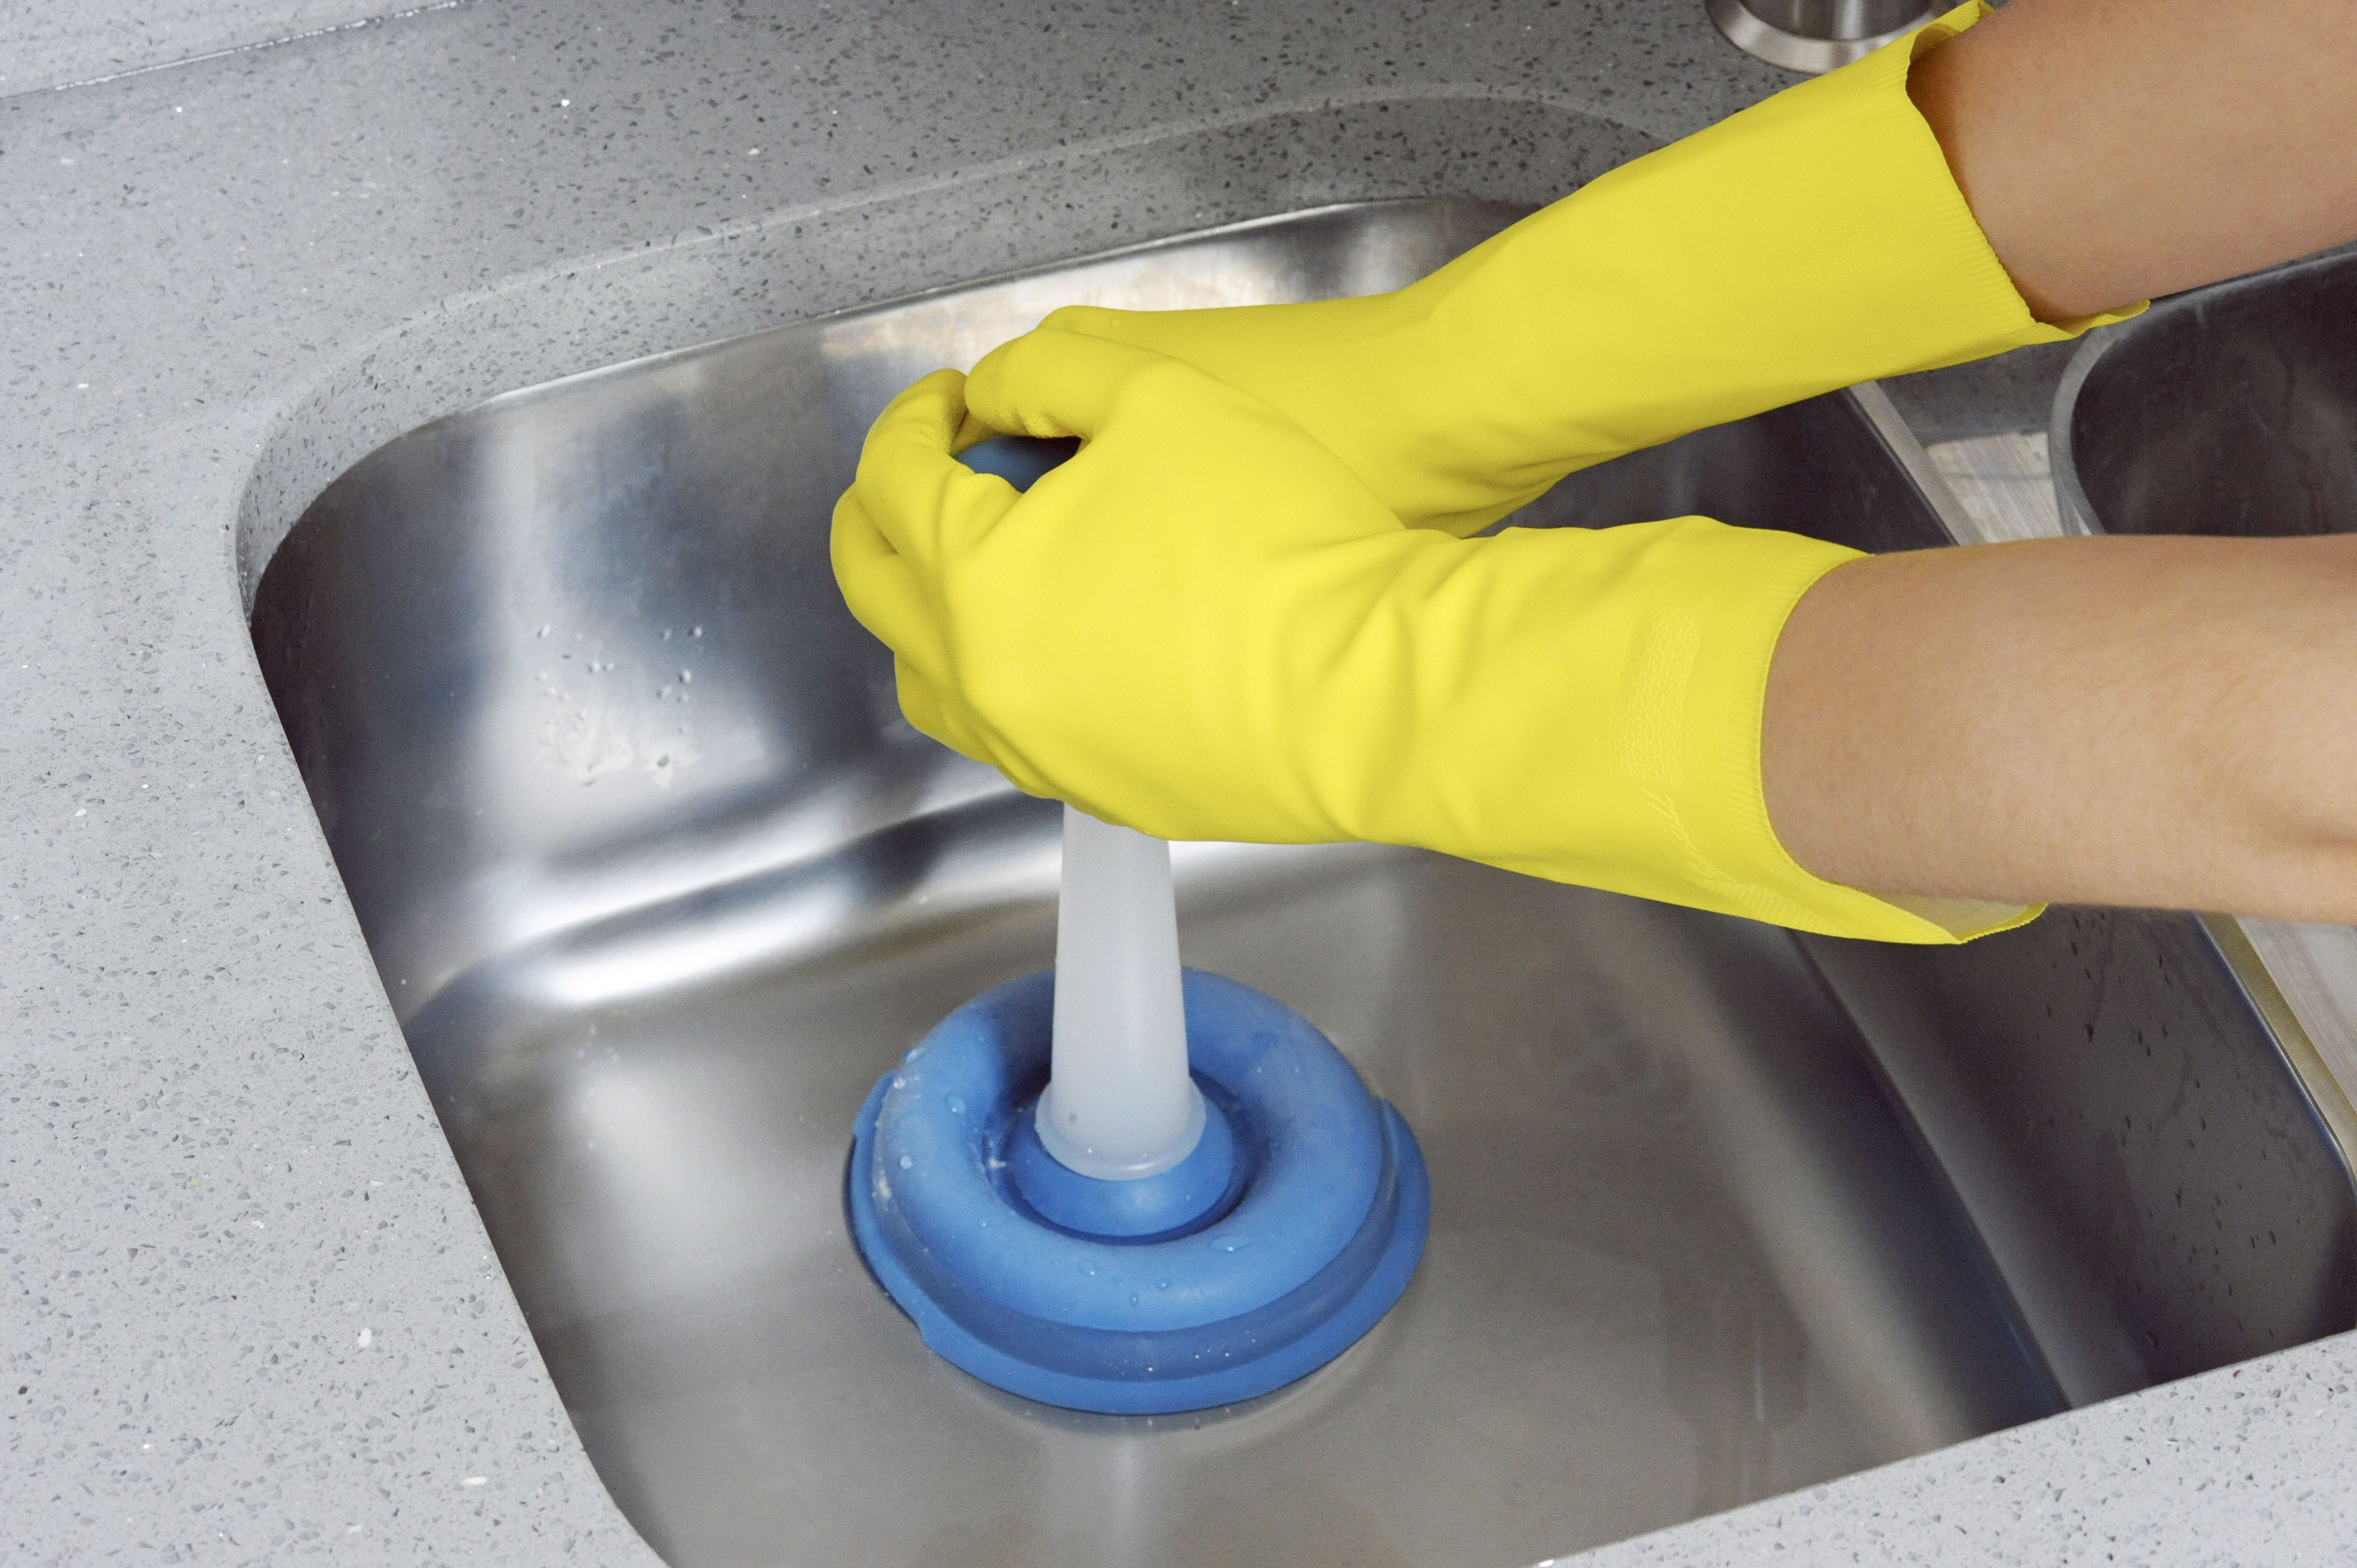 how to use a plunger to unclog a sink drain